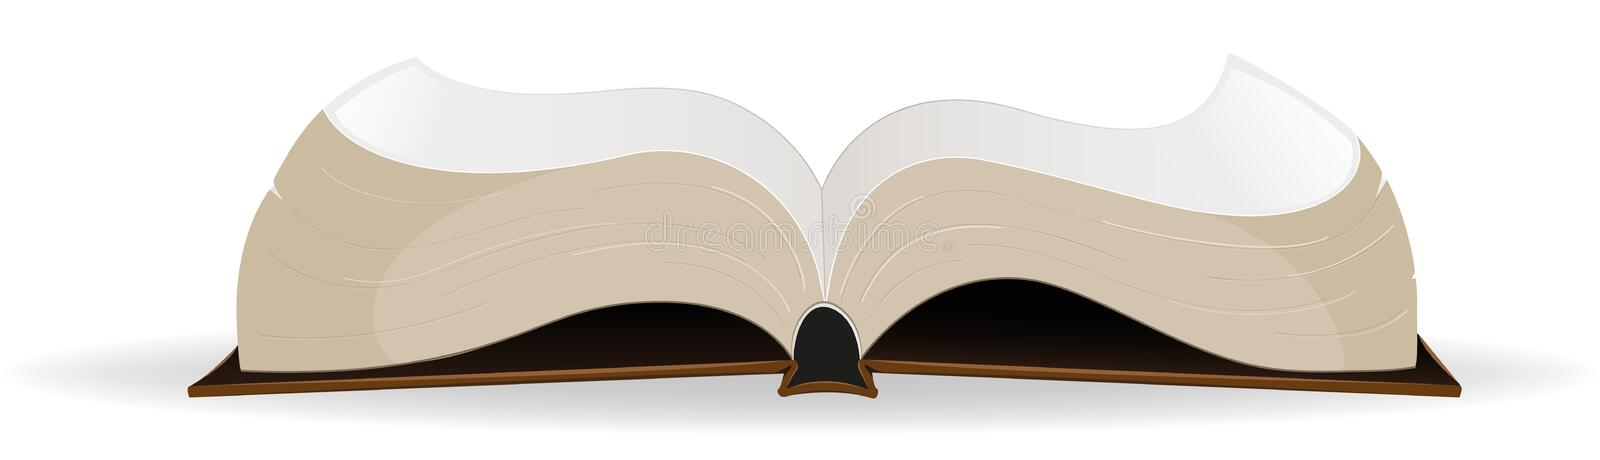 Download Open book stock photo. Image of hardcover, old, education - 34003934